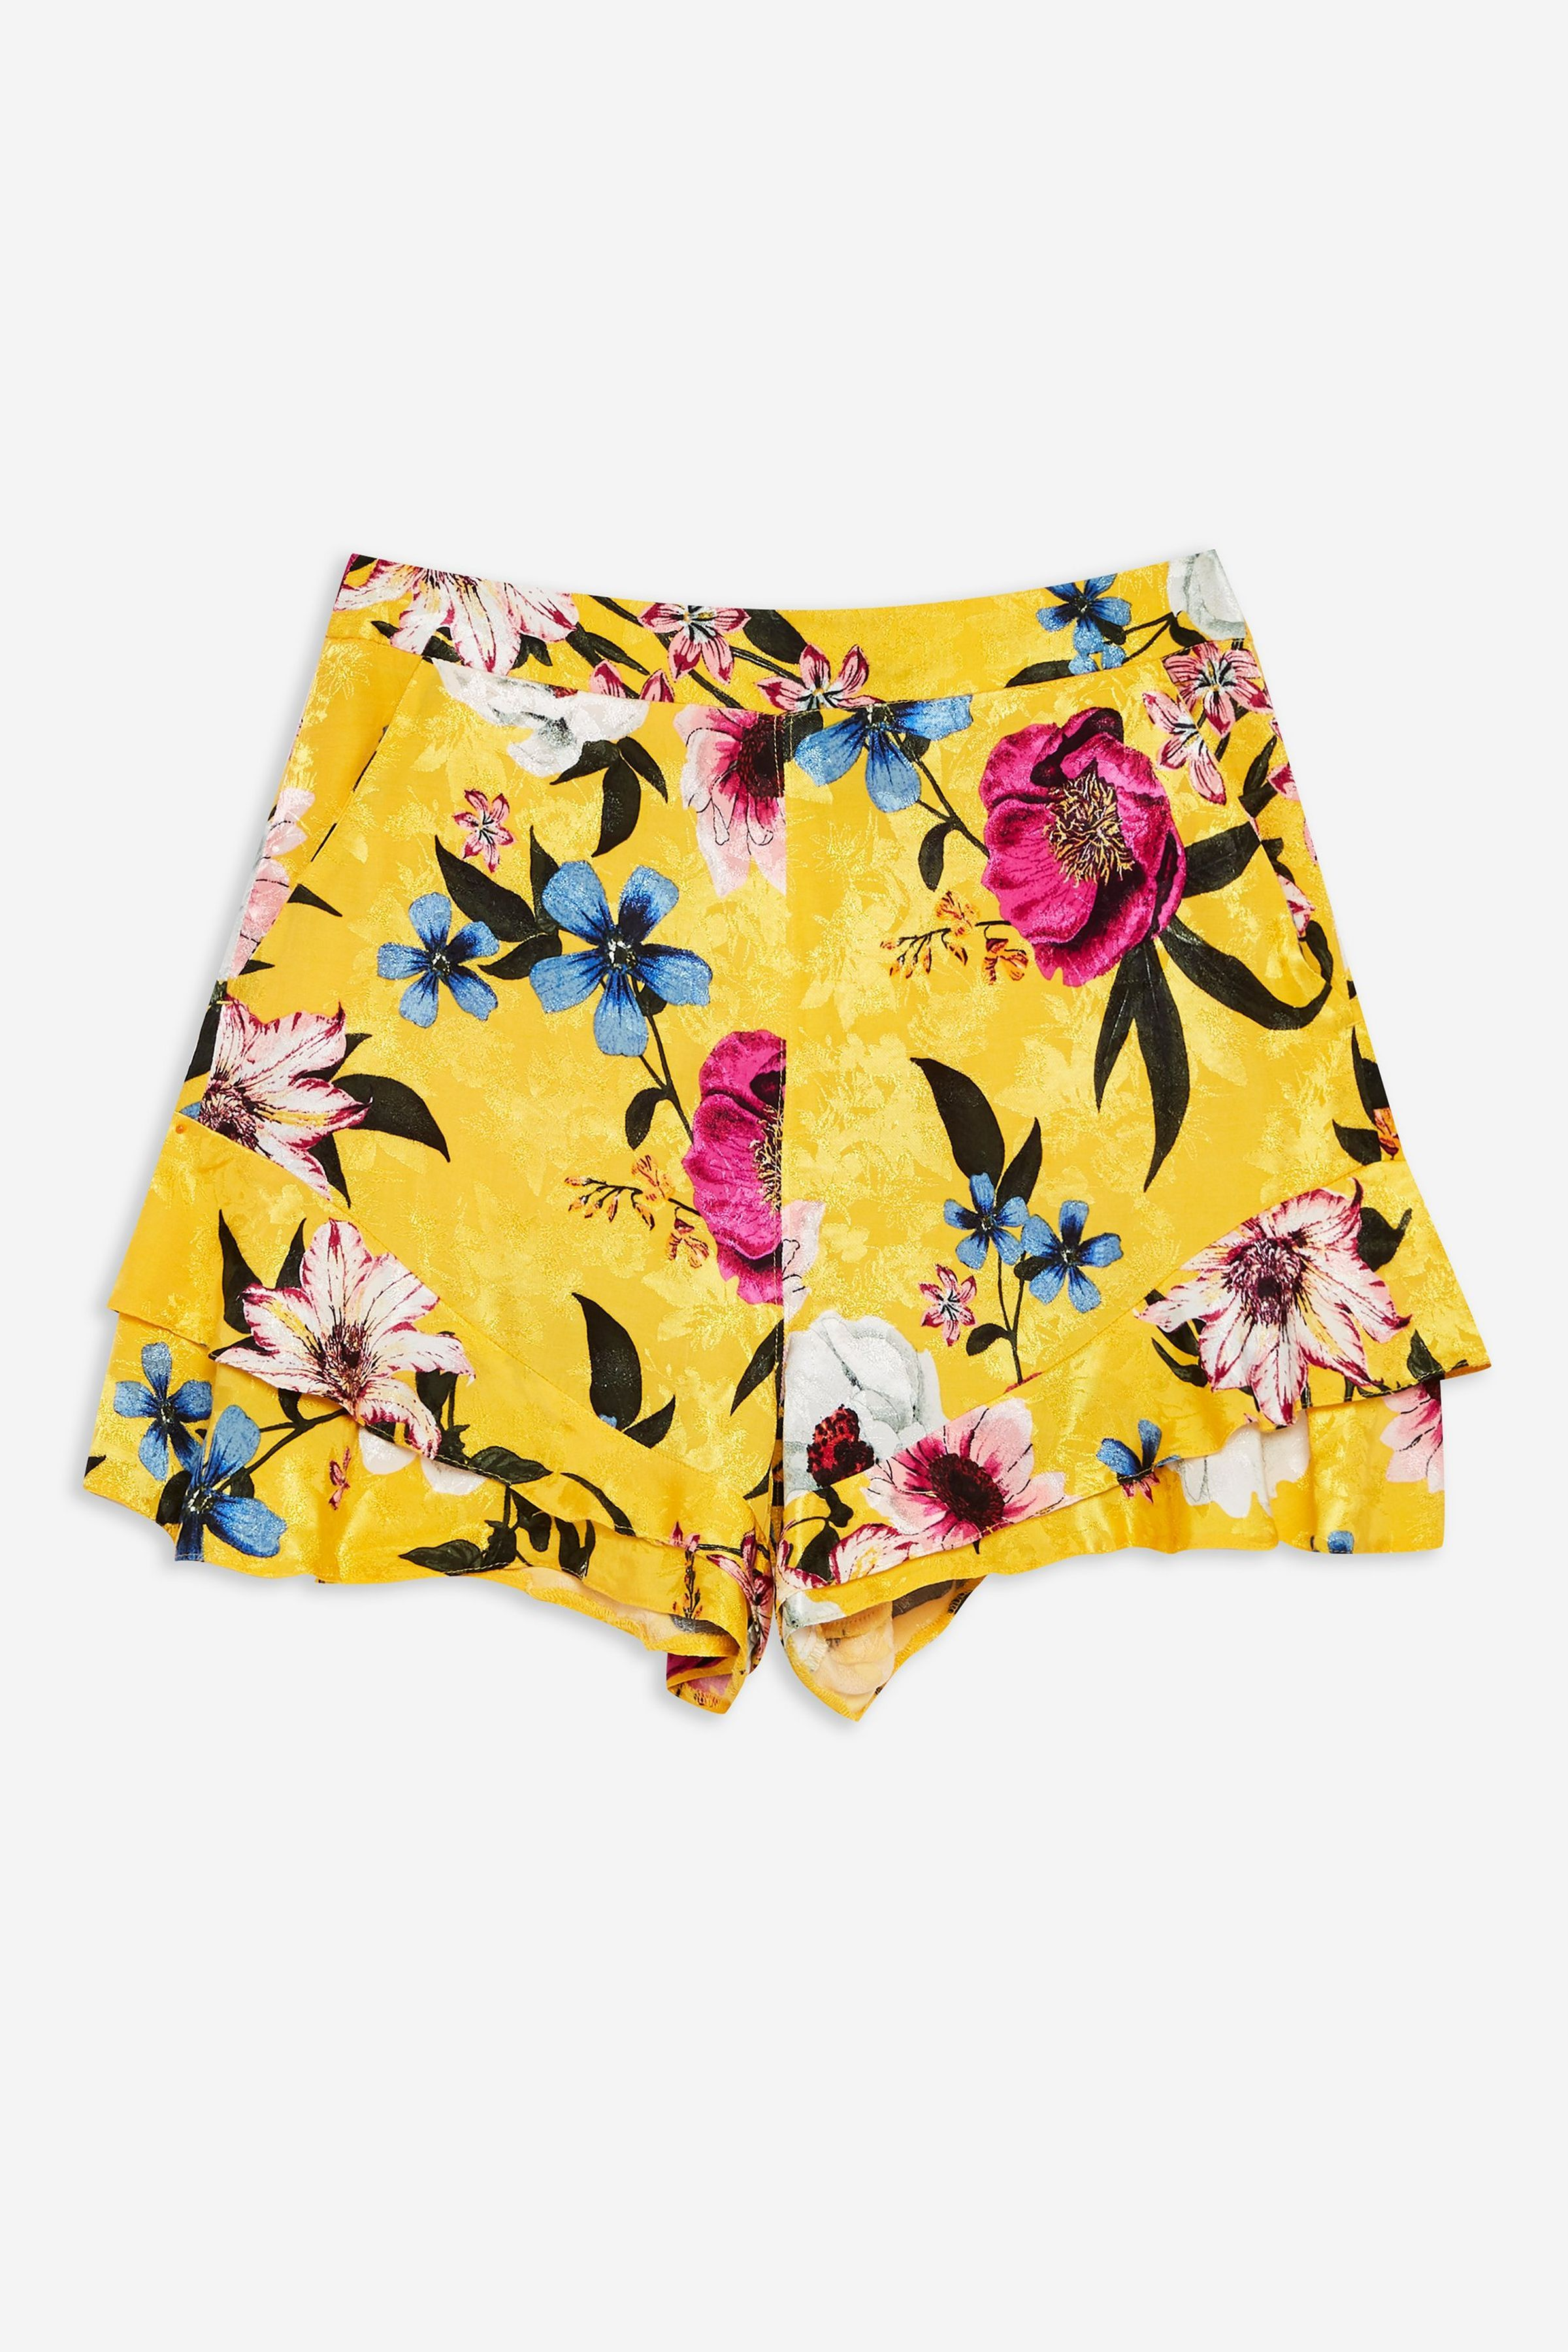 fed320cab5 Yellow Floral Shorts in 2019 | JRC IN-STORE 2019 | Floral shorts ...